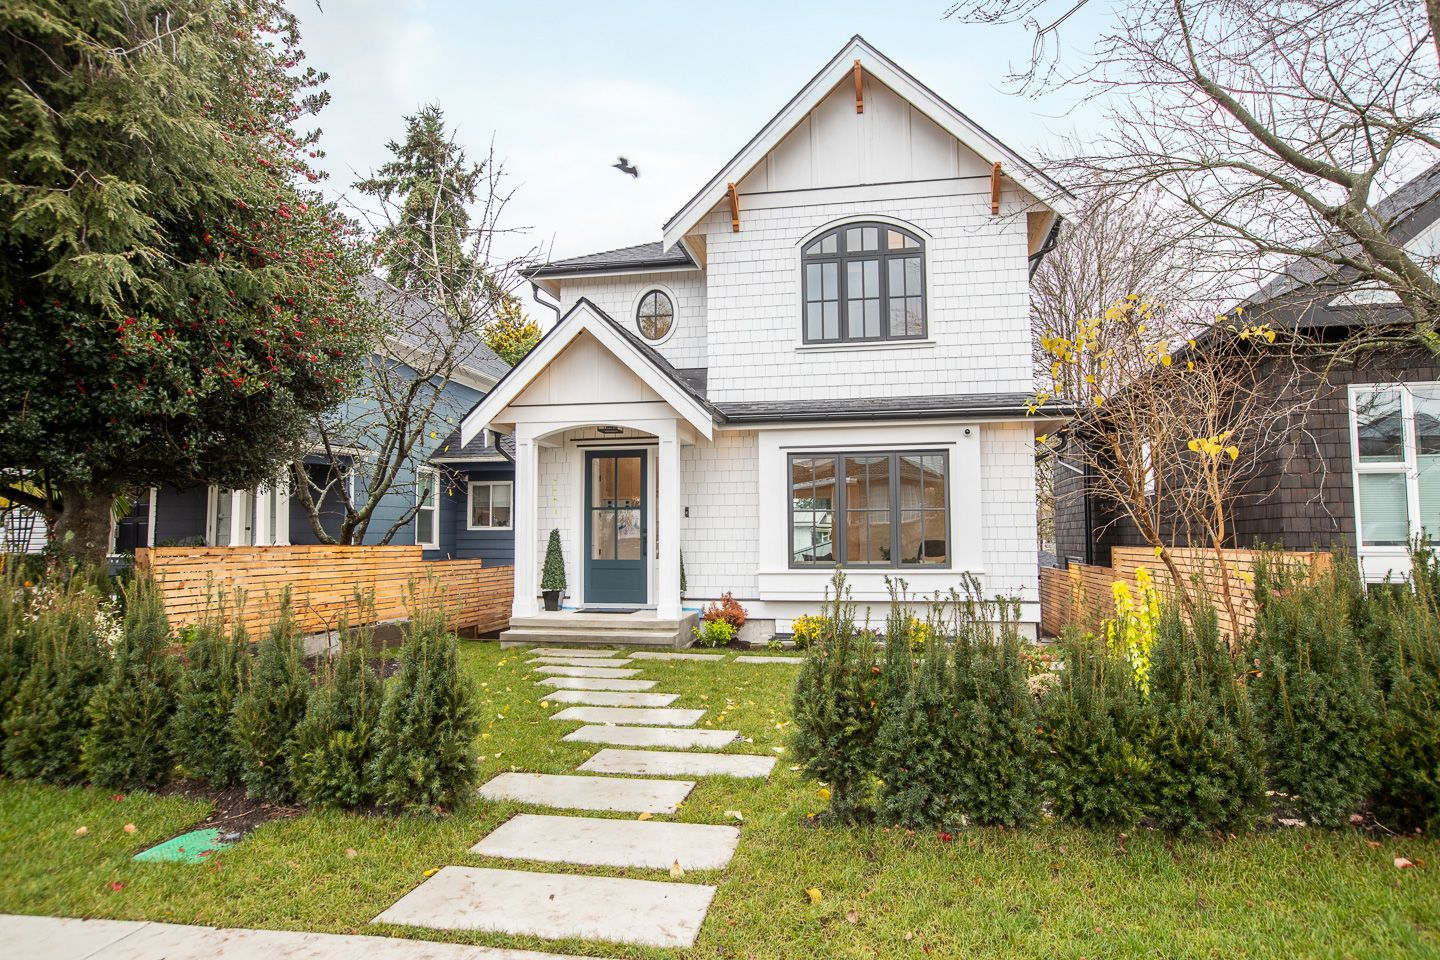 Main Photo: 4980 WALDEN ST in VANCOUVER: Main House for sale (Vancouver East)  : MLS®# R2519425